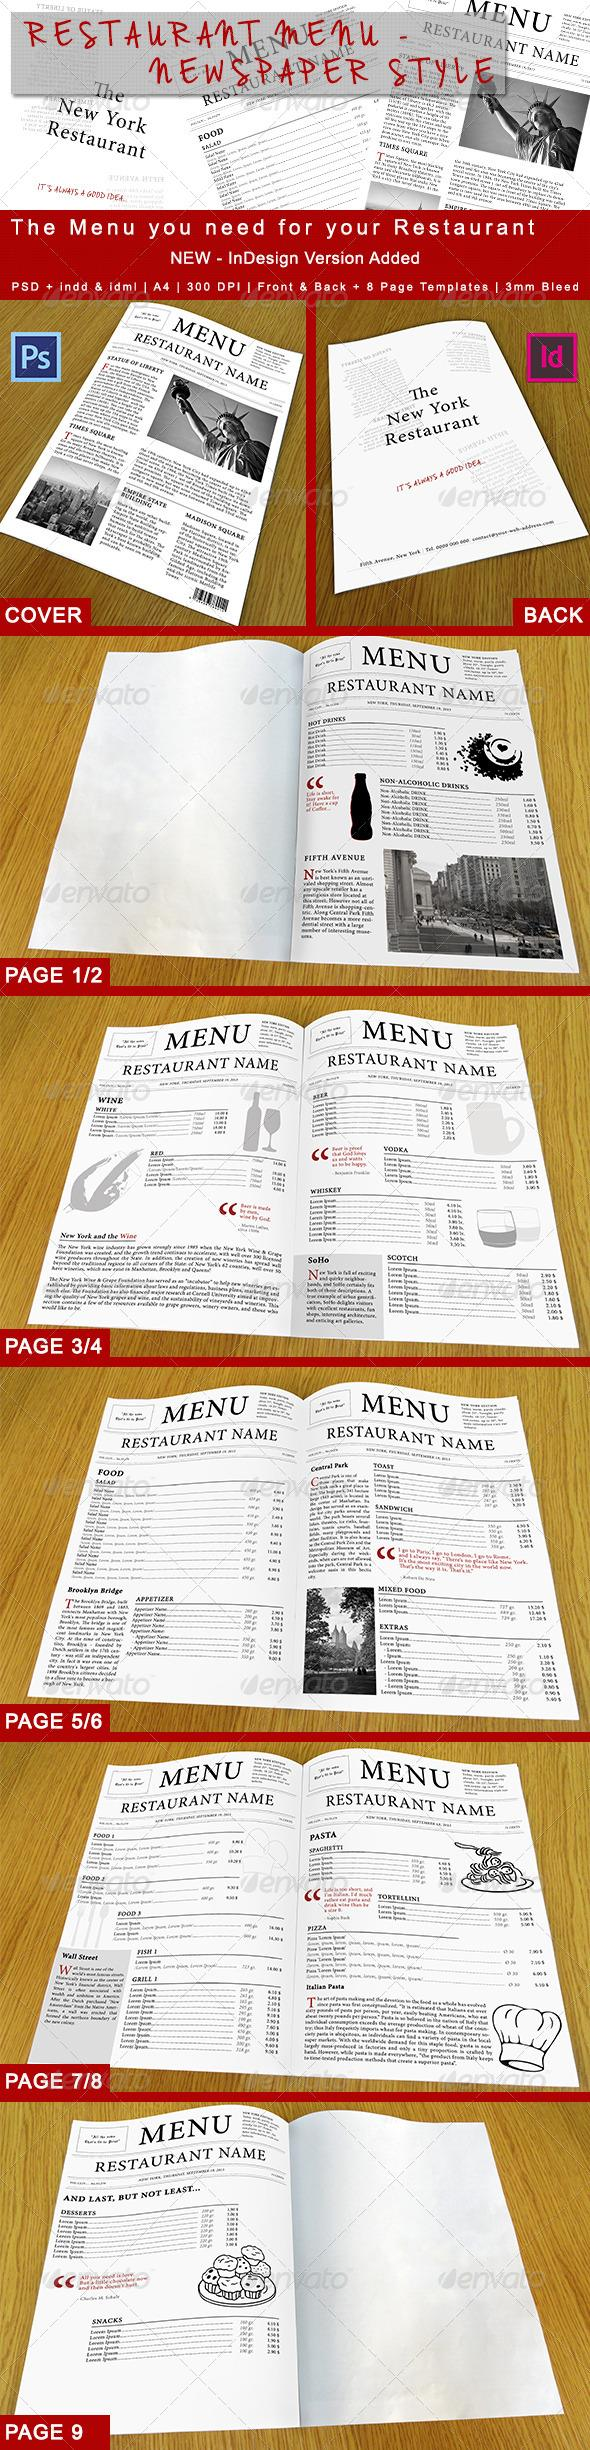 Comfortable 1 Page Resume Format Tiny 1 Page Resume Templates Round 10 Steps To Creating An Effective Resume 11x17 Graph Paper Template Youthful 18th Birthday Invitation Templates Brown2 Month Calendar Template Show Clear Workstream Delivery Plans, MVP And Milestones With This ..